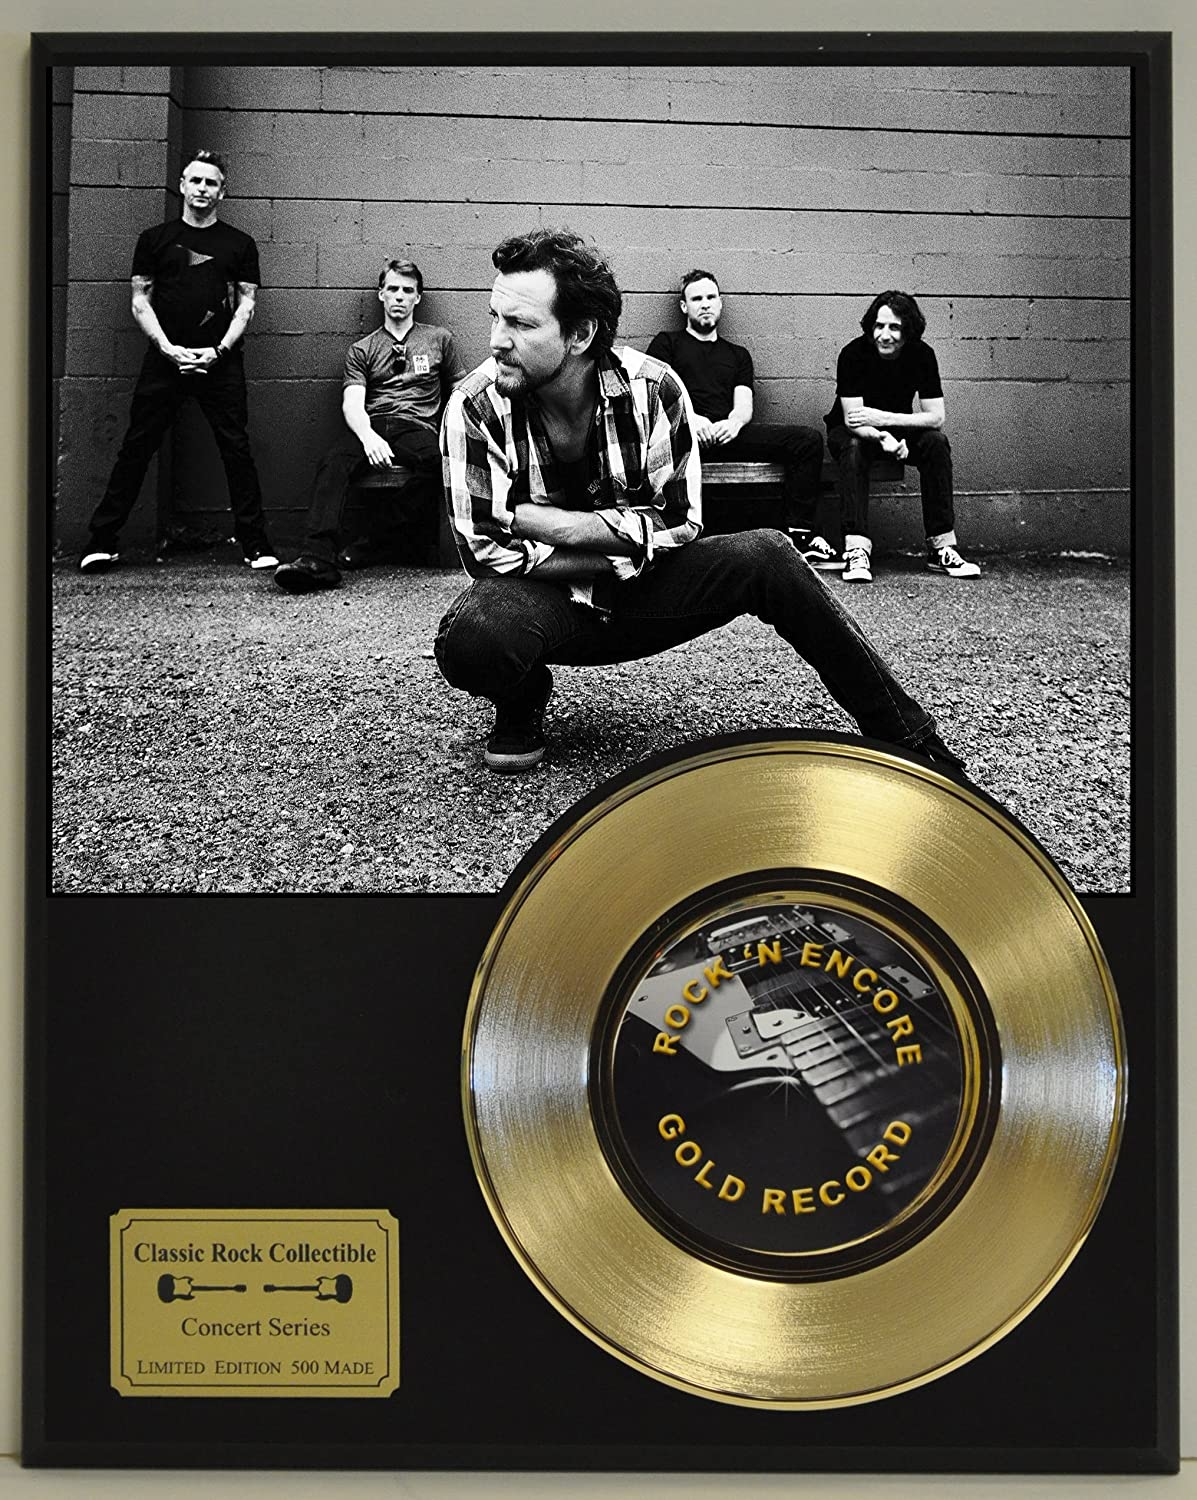 Pearl Jam Limited Edition Gold 45 Record Display. Only 500 made. Limited quanities. FREE US SHIPPING Classic Rock Collectibles